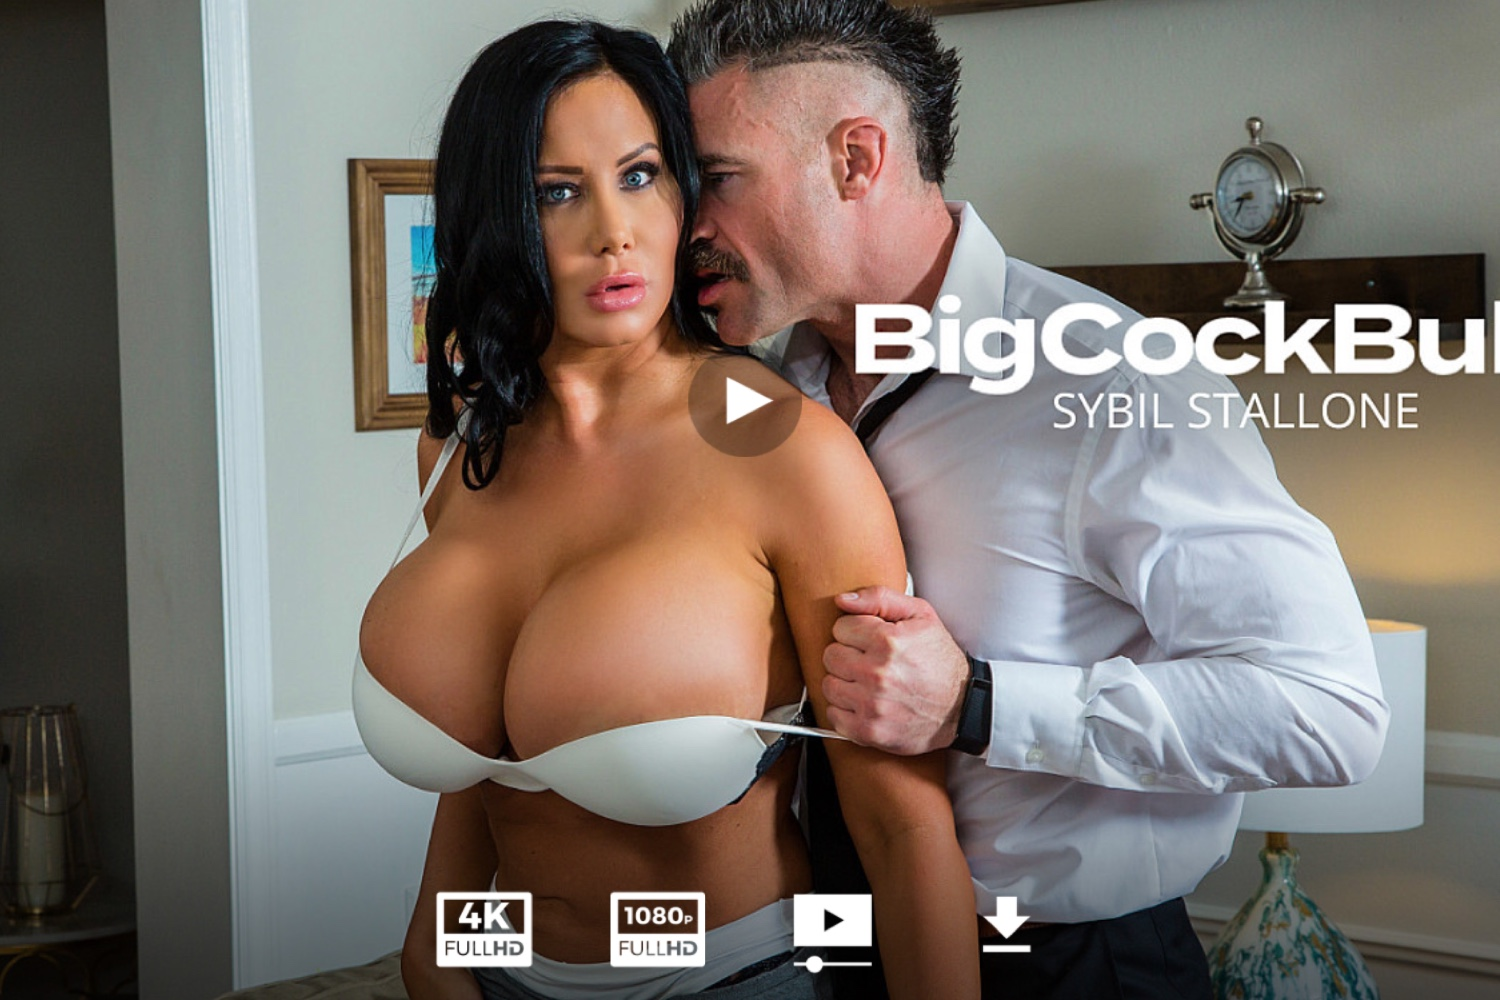 Sybil Stallone Rides A Big Cock In Her Stockings - Sybil Stallone Legs - Sybil Stallone Feet